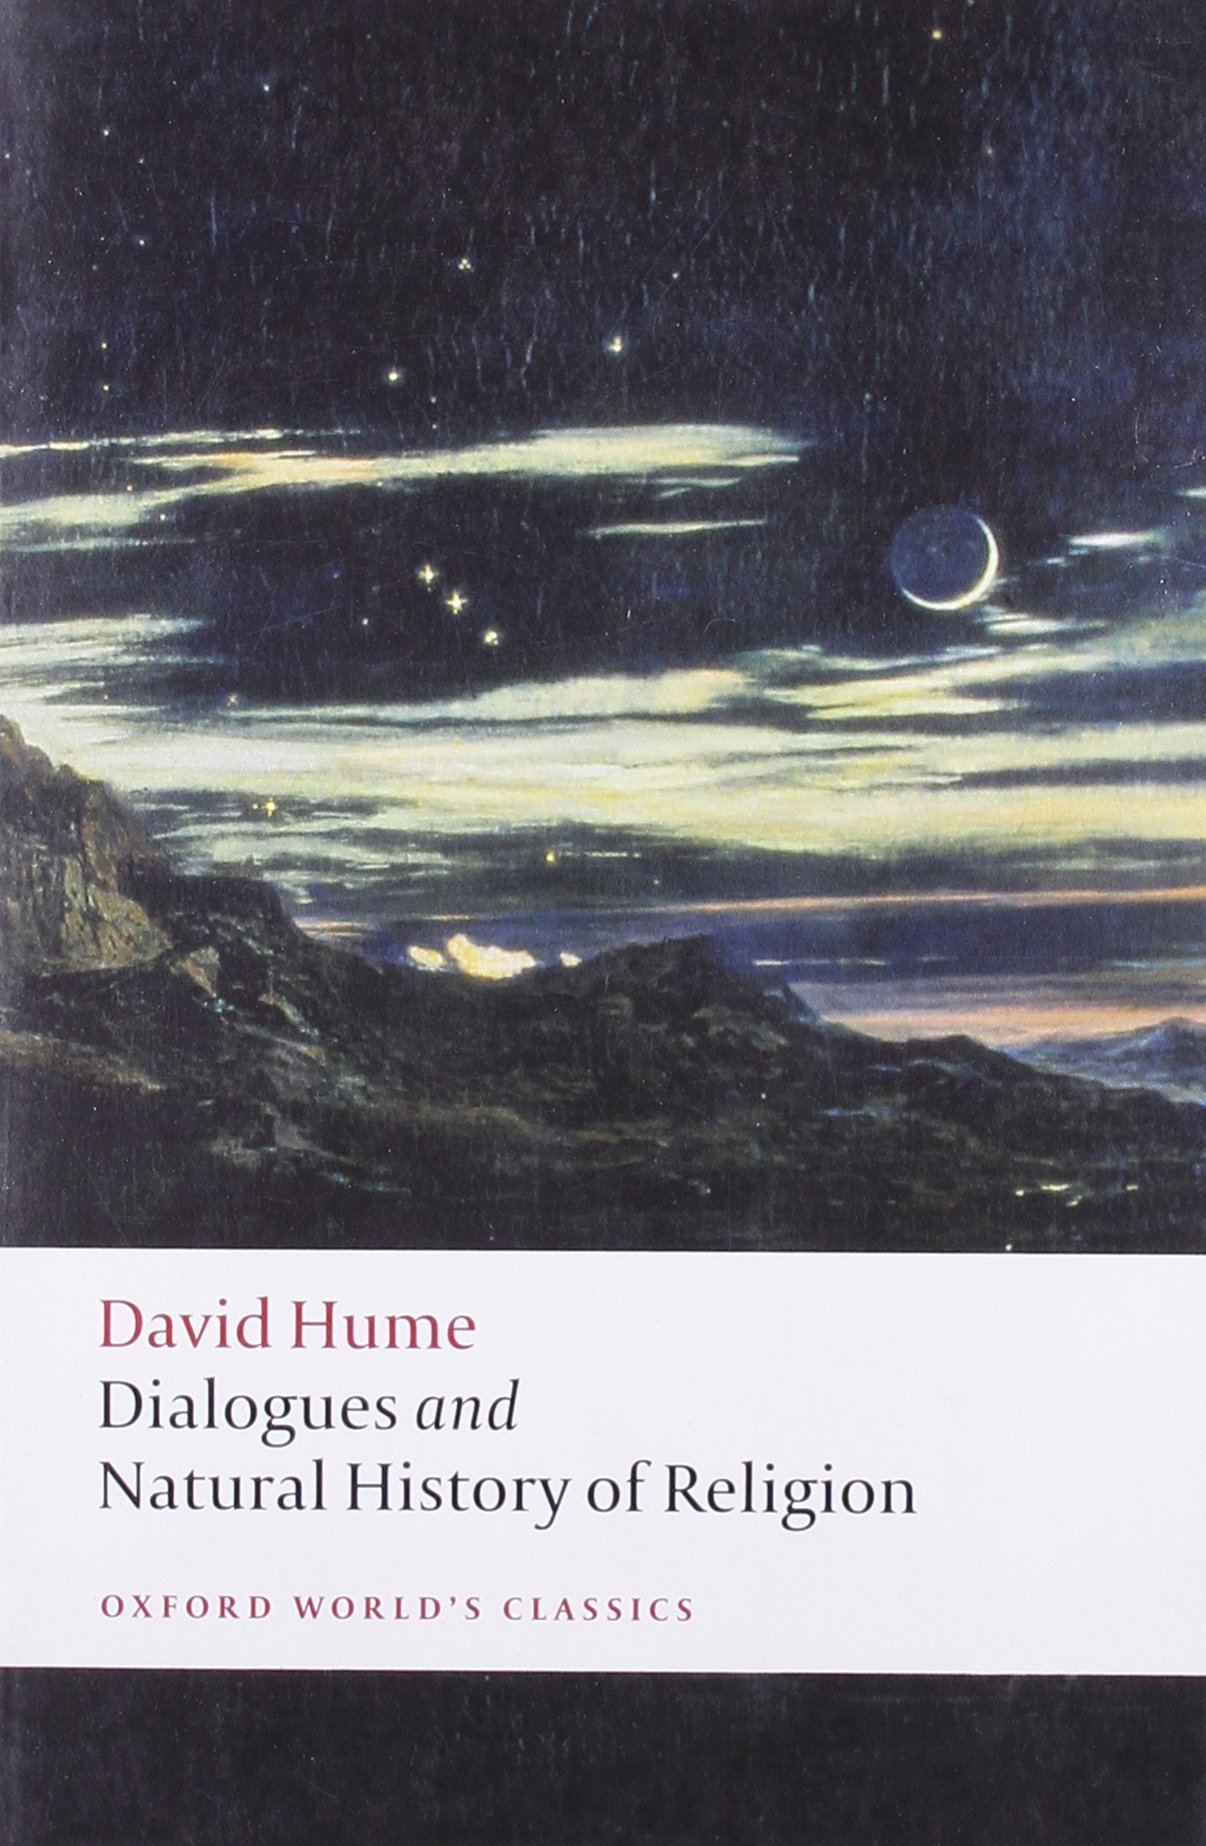 dialogues concerning natural religion and the natural history of dialogues concerning natural religion and the natural history of religion oxford world s classics amazon co uk david hume j c a gaskin